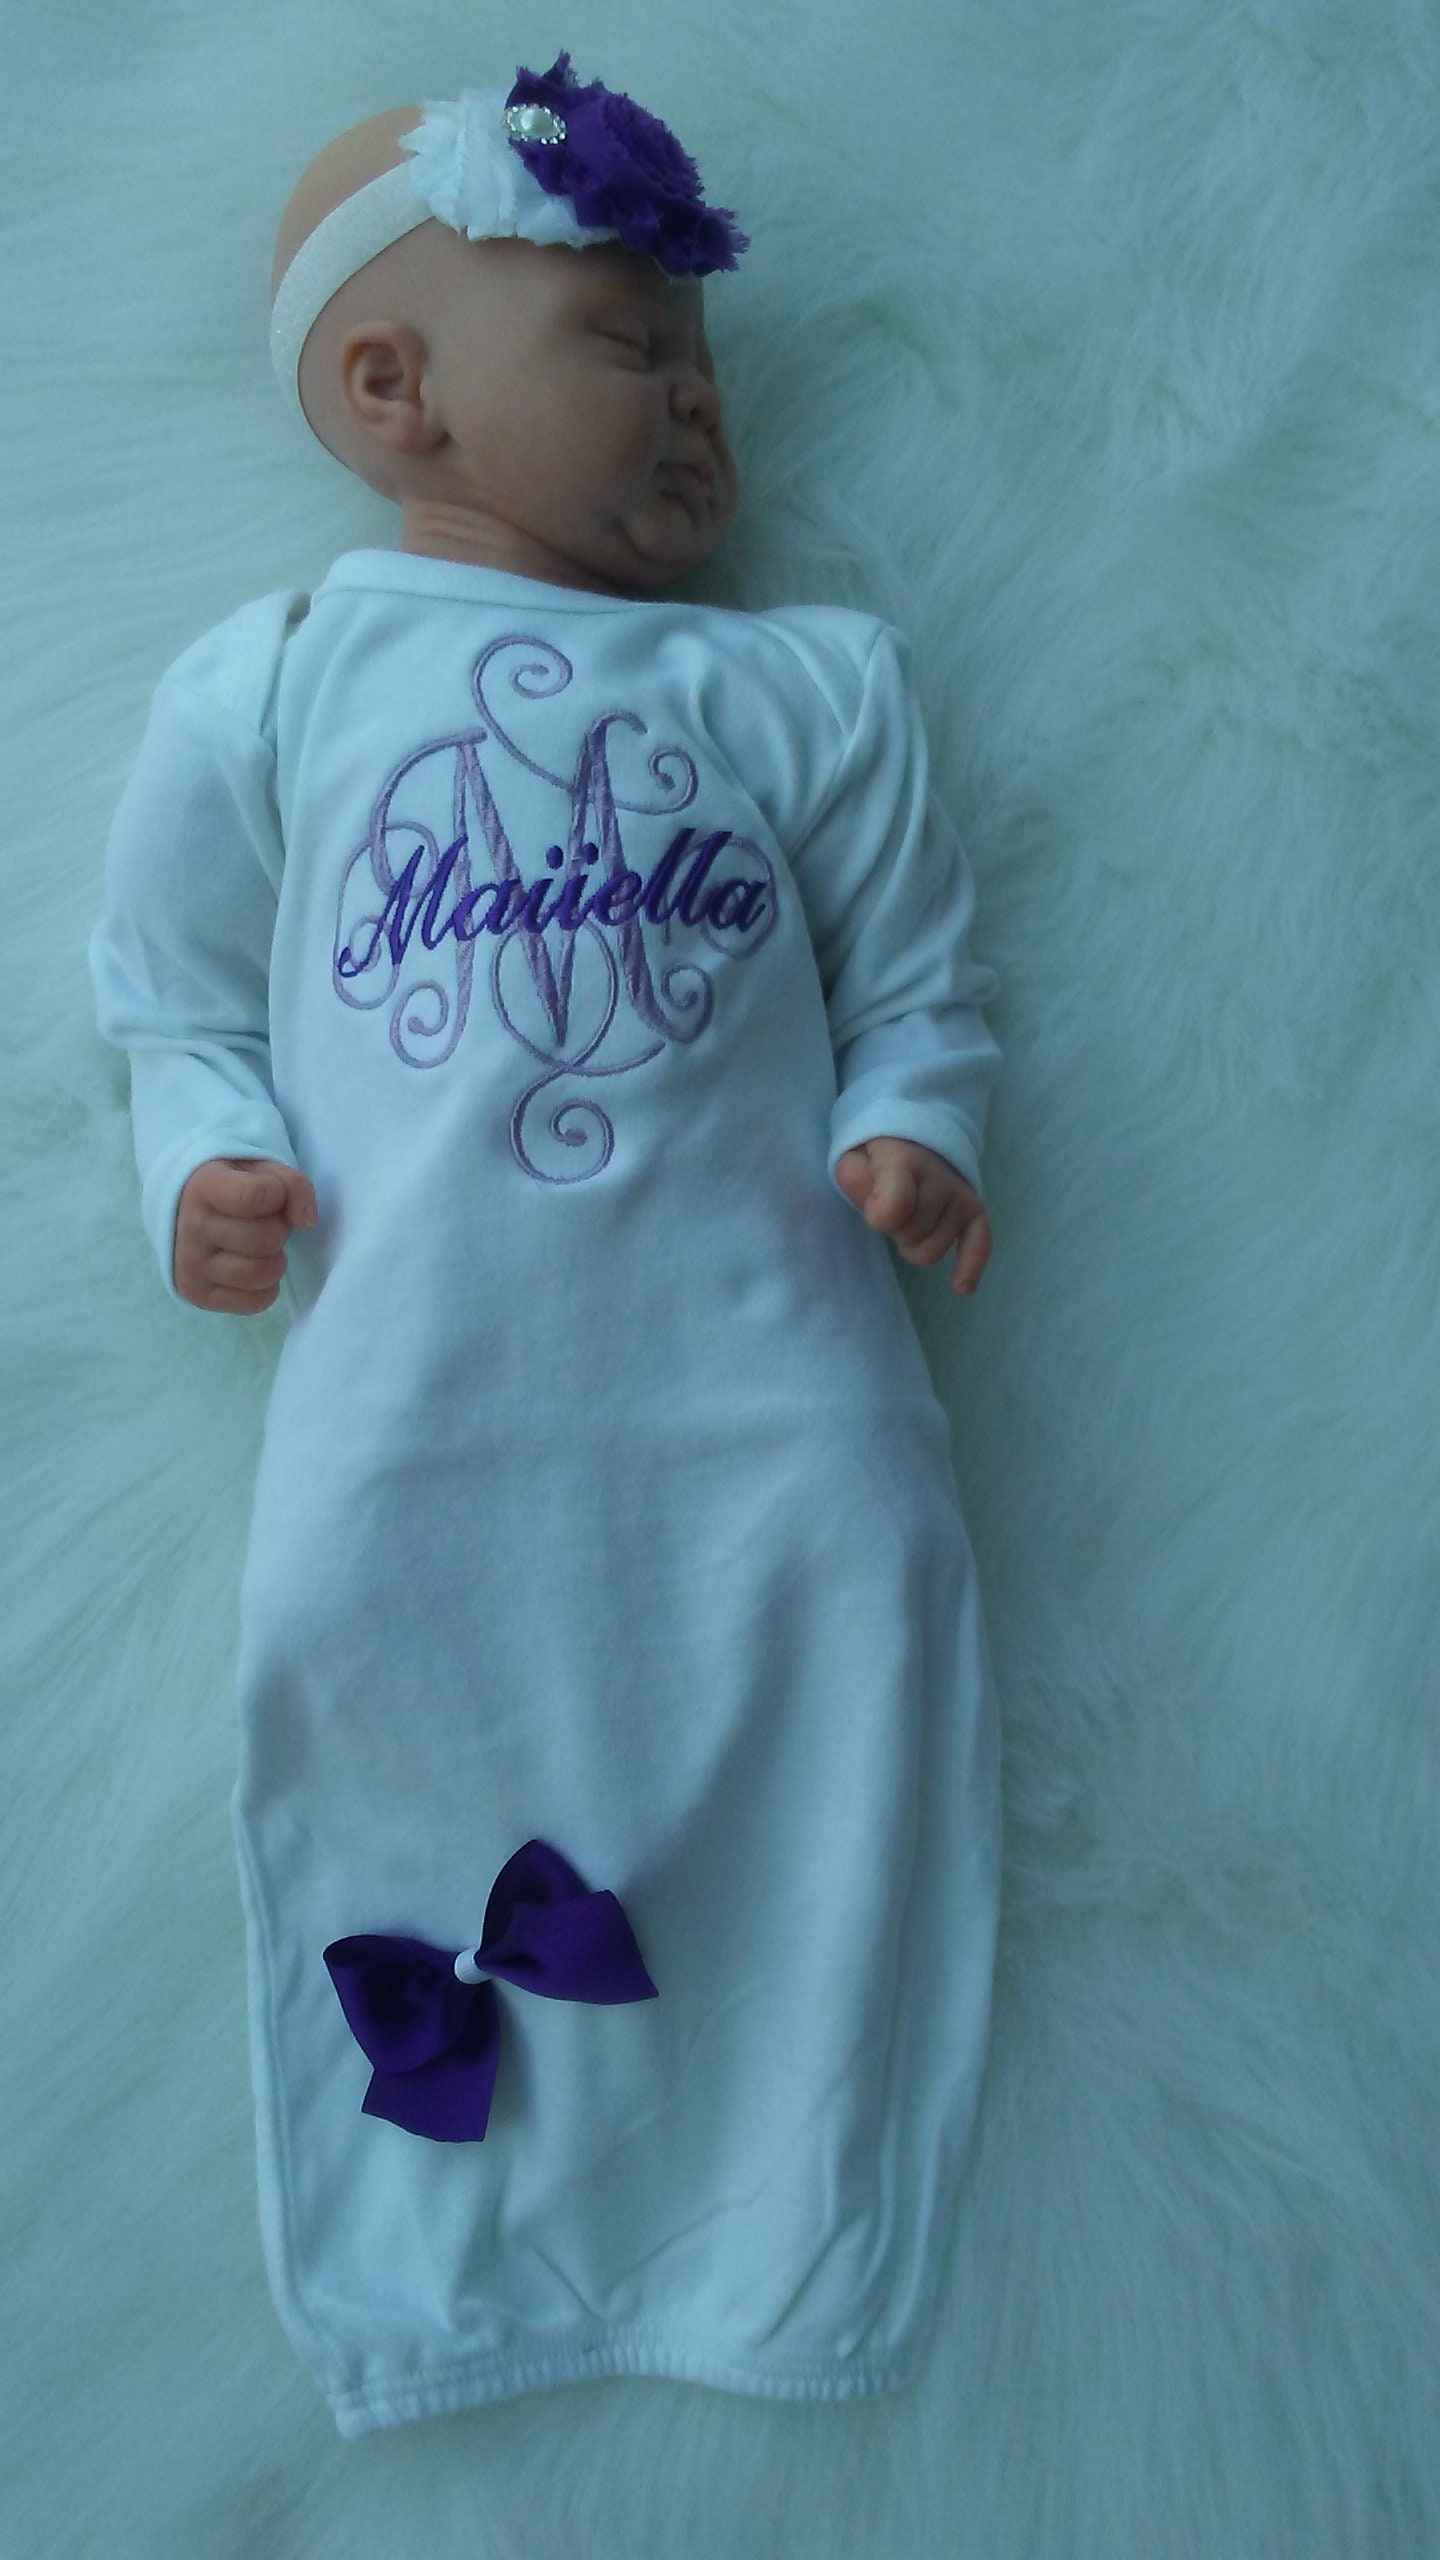 f89ba0cc0b36b Personalized Baby Girl Coming Home Outfit Purple Newborn Hospital Outfit  Newborn Girl Take Home Outfit Personalized Baby Shower Gifts